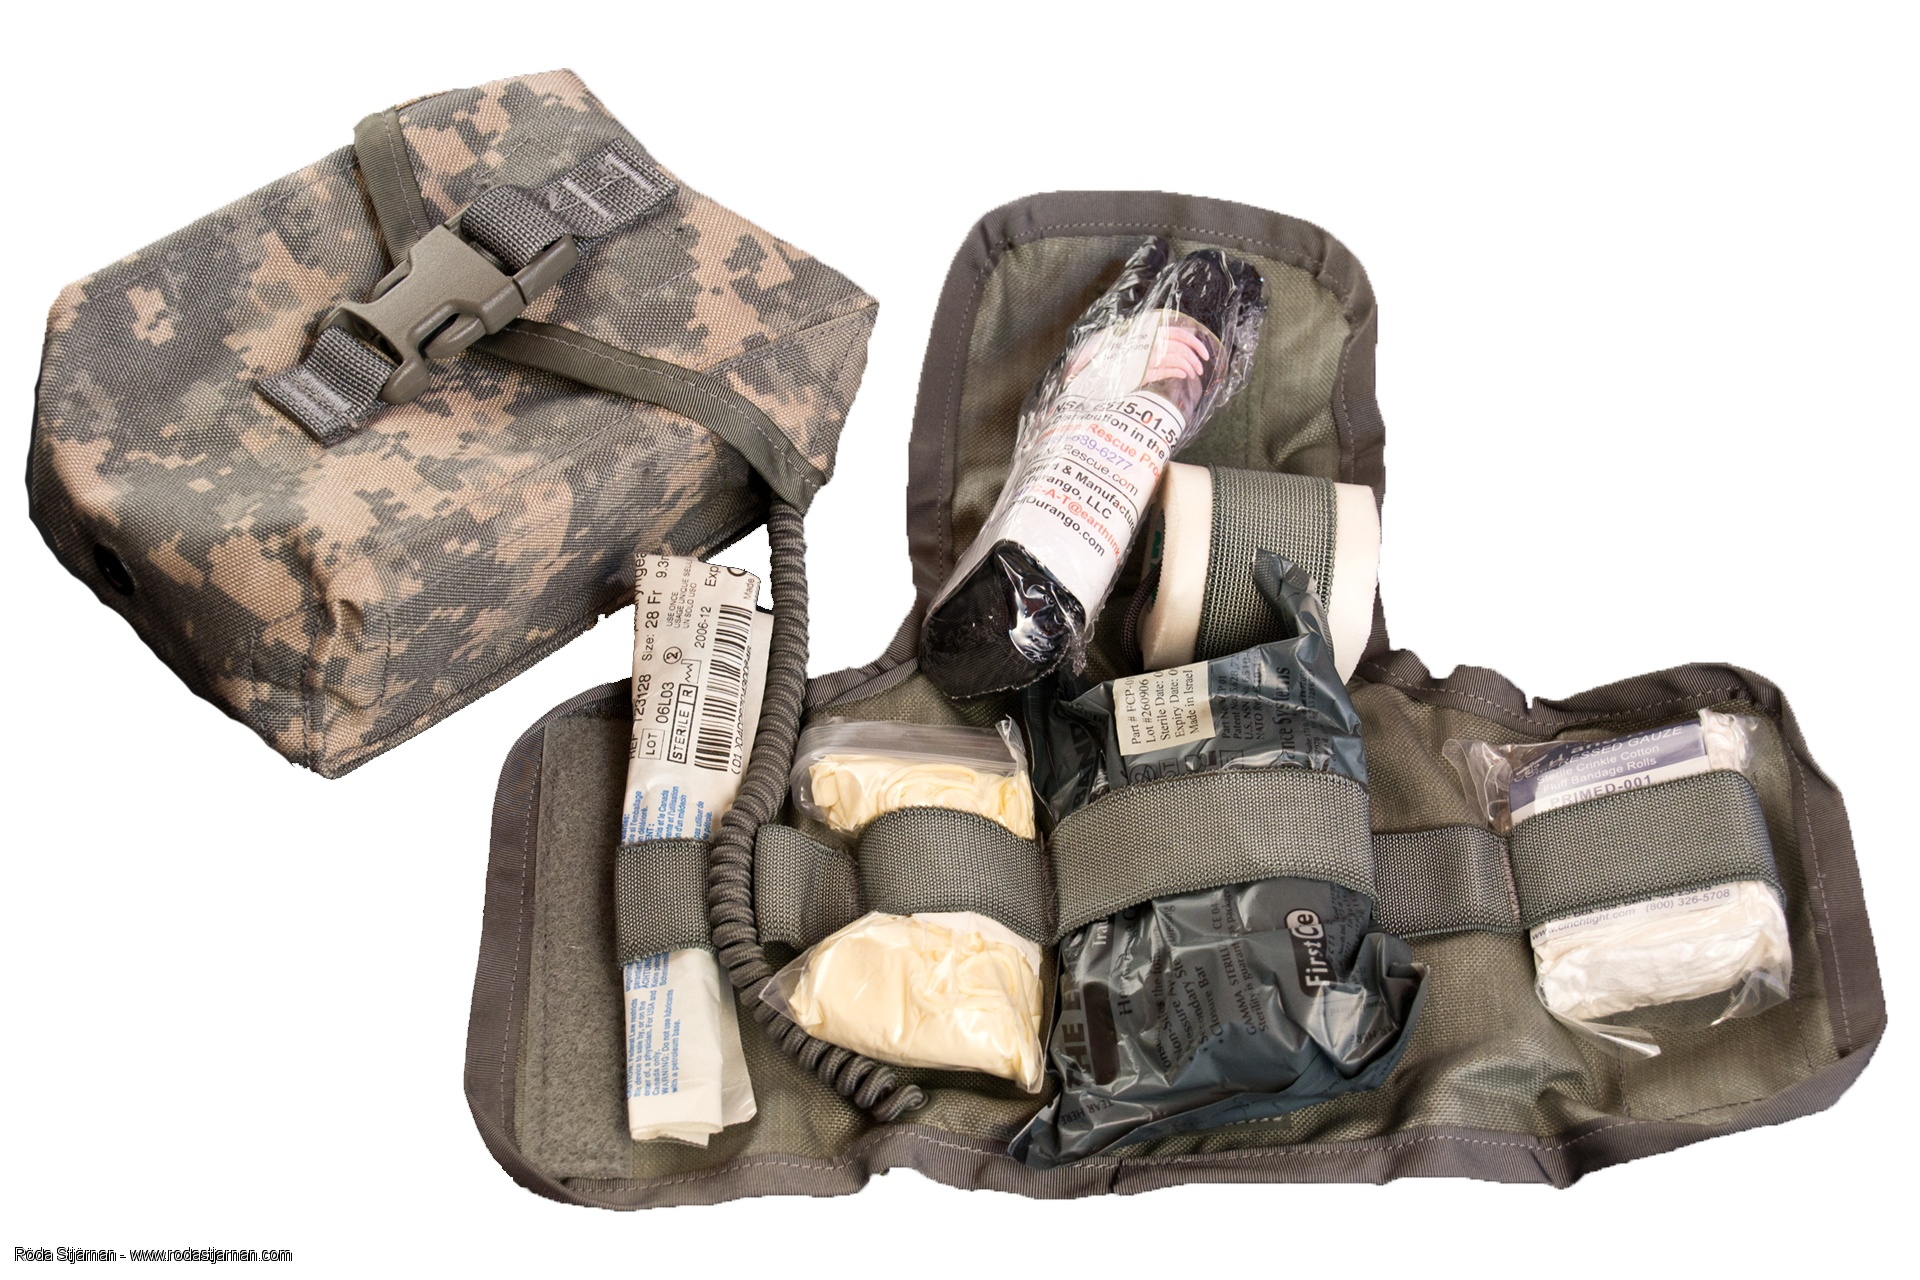 The US Army's Improved First Aid Kit (IFAK), showing the pouch and folding